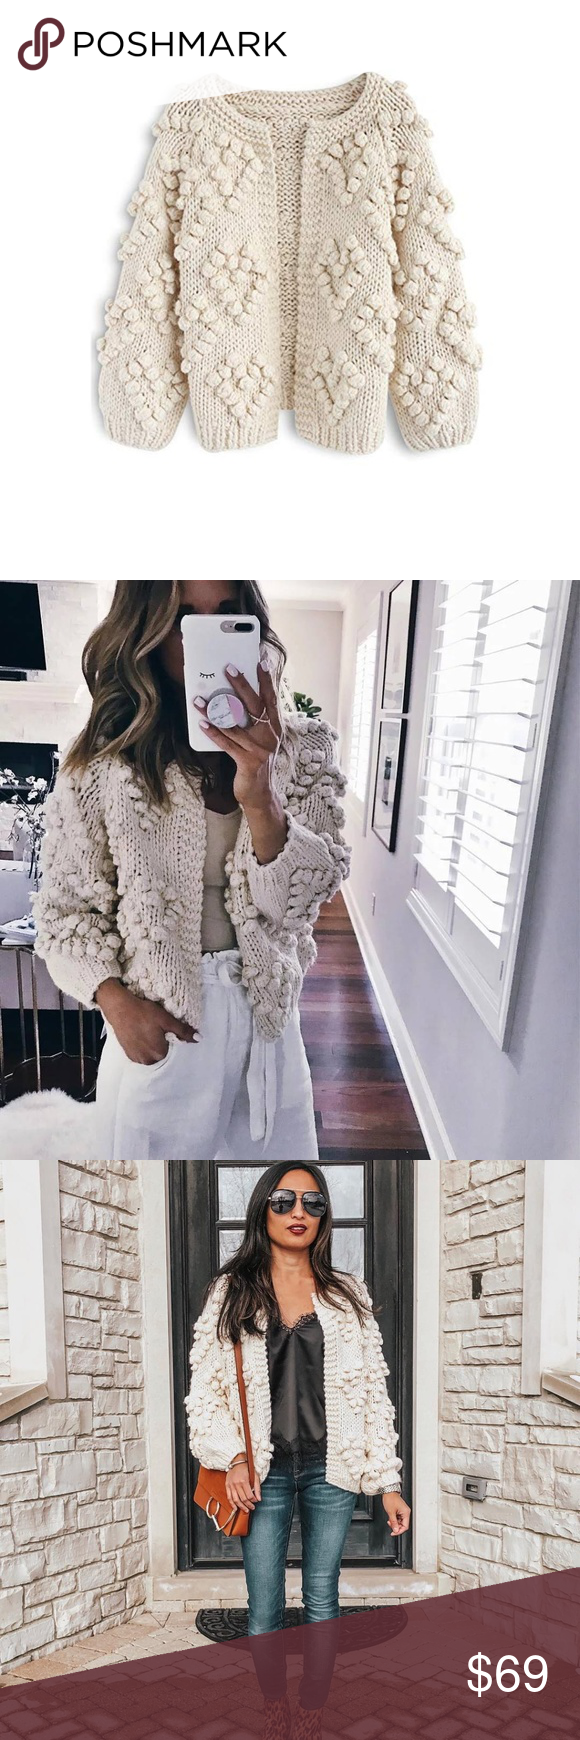 Heart Shaped Pom Cardigan Sweaters For Women Fashion Clothes Design